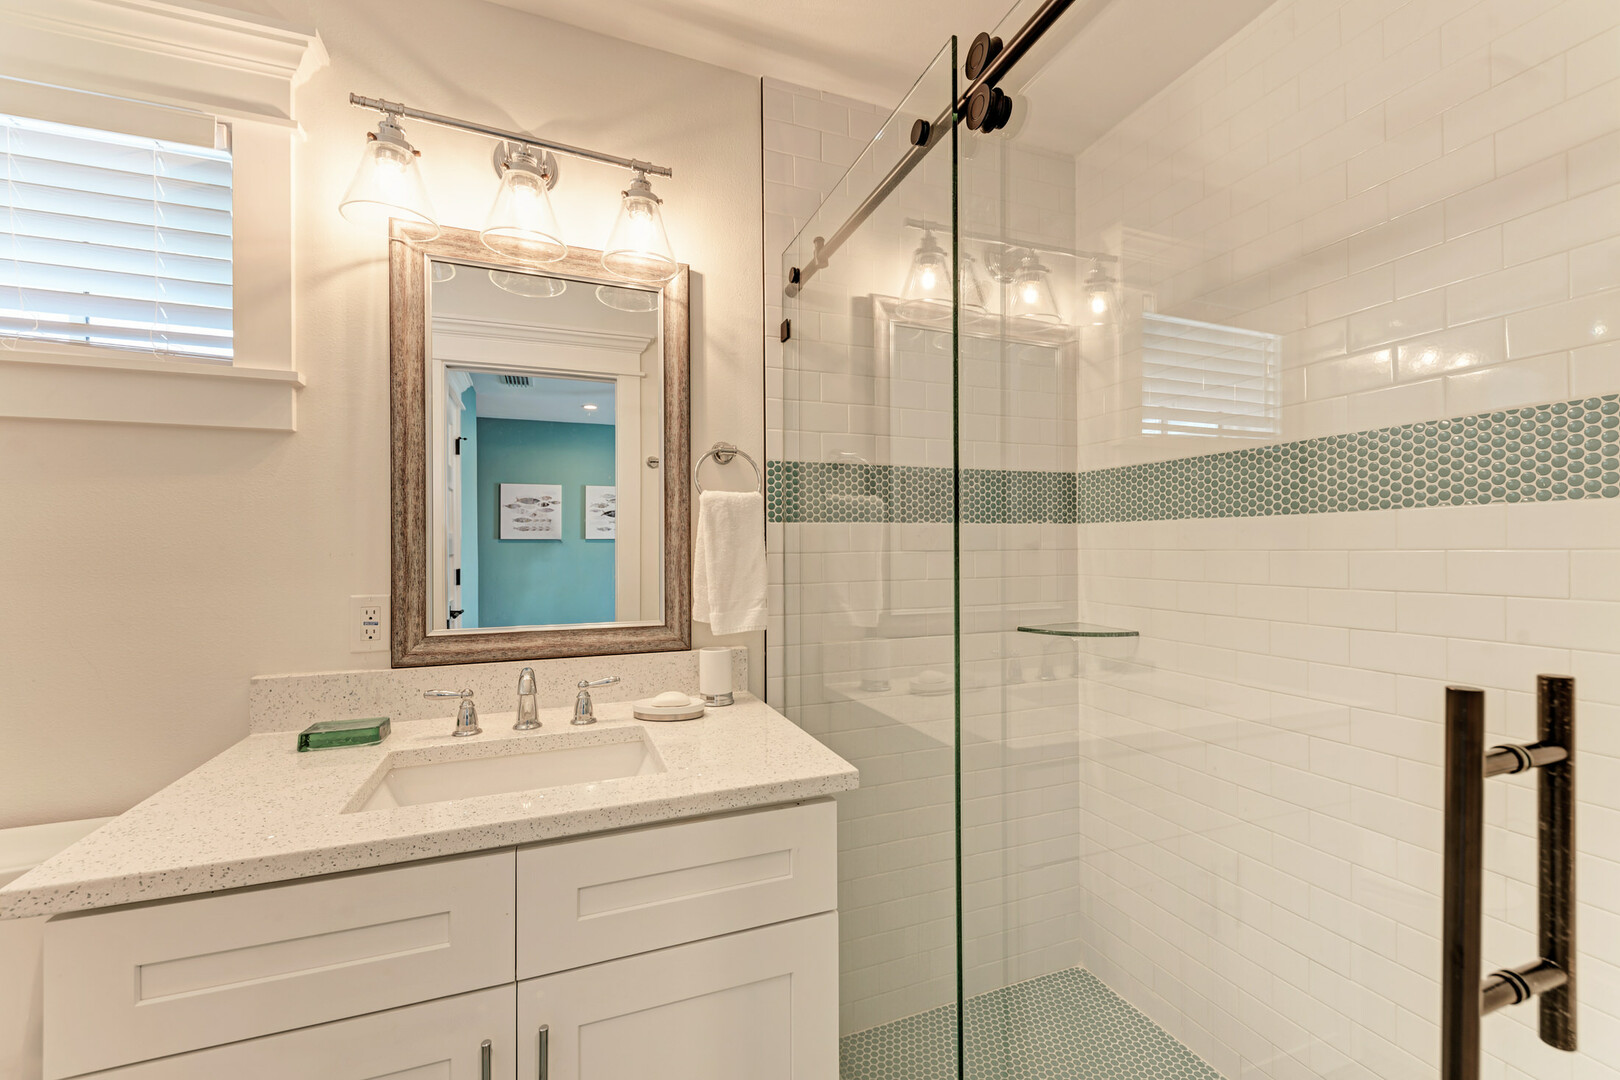 4 Sandpipers guest bathroom with shower